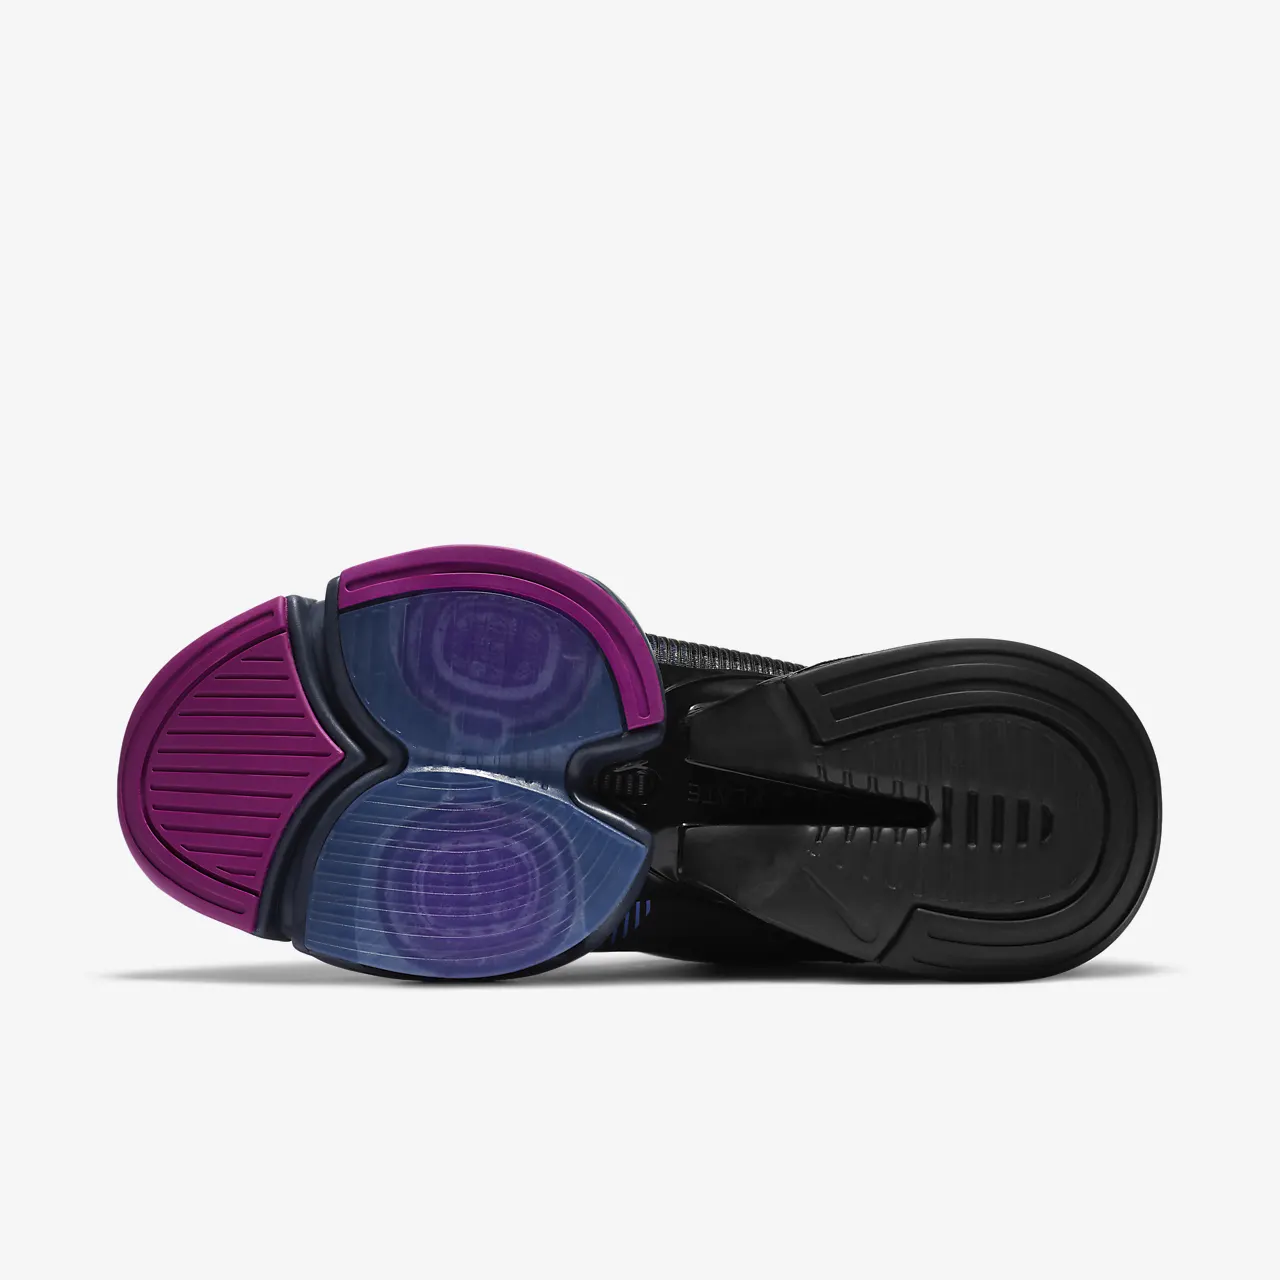 유럽직배송 나이키 NIKE Nike Air Zoom SuperRep 2 Women's HIIT Class Shoe CU5925-010